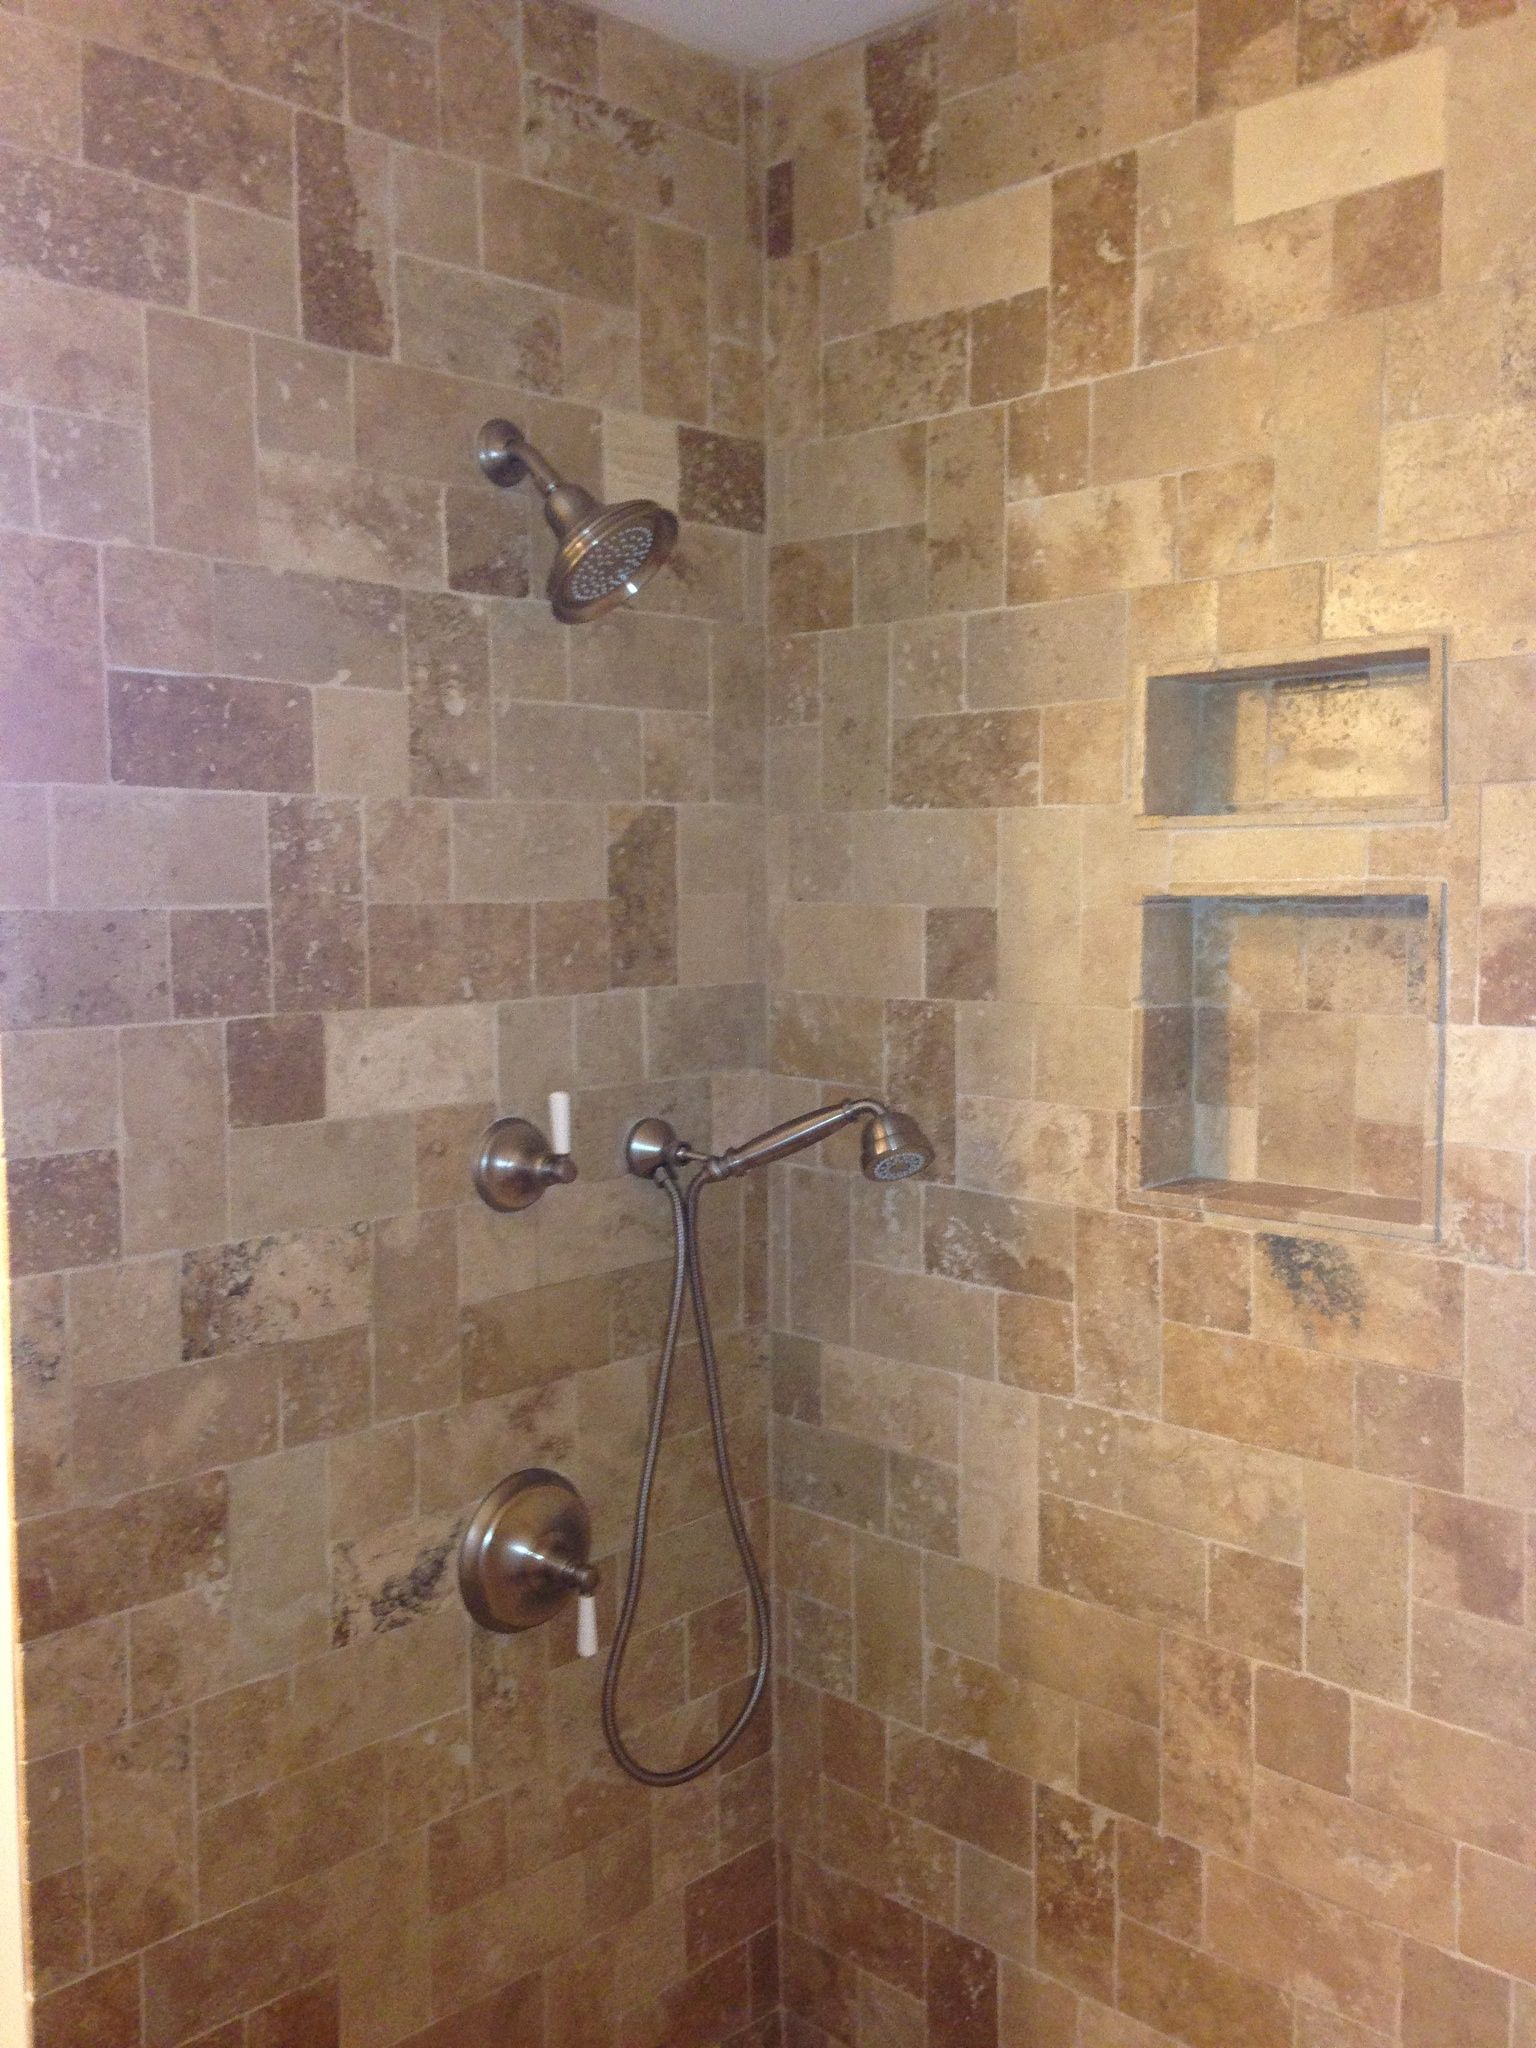 Earthstone Travertine shower in a Tuscany pattern layout